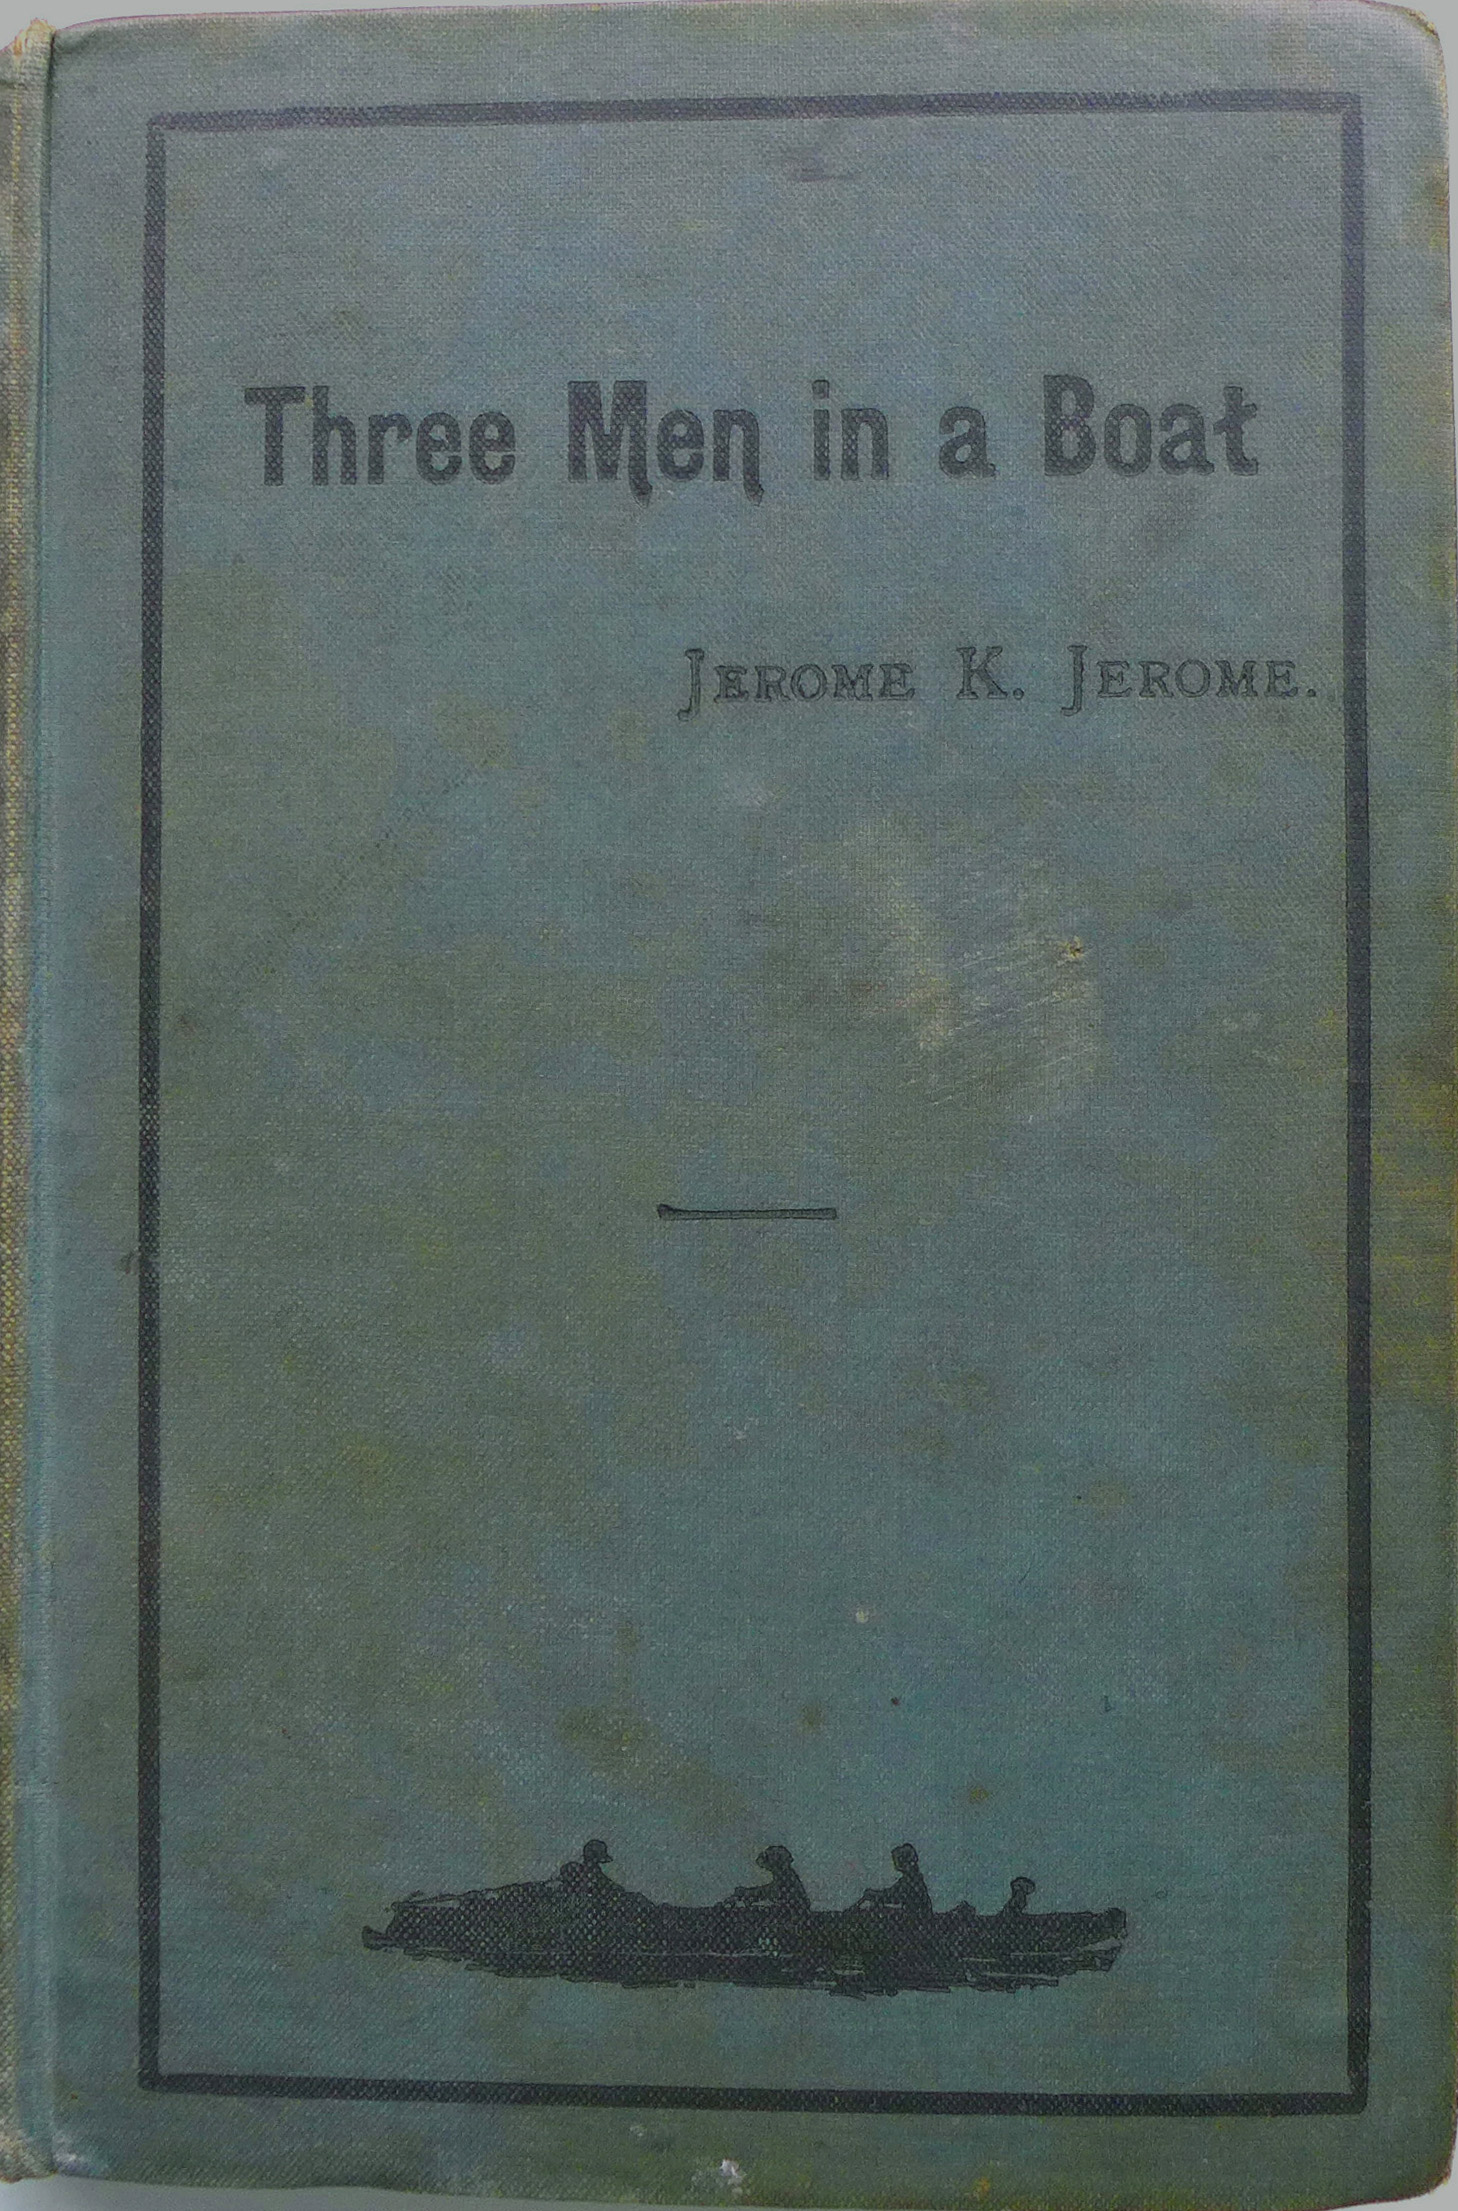 Three Men in a Boat - Wikipedia